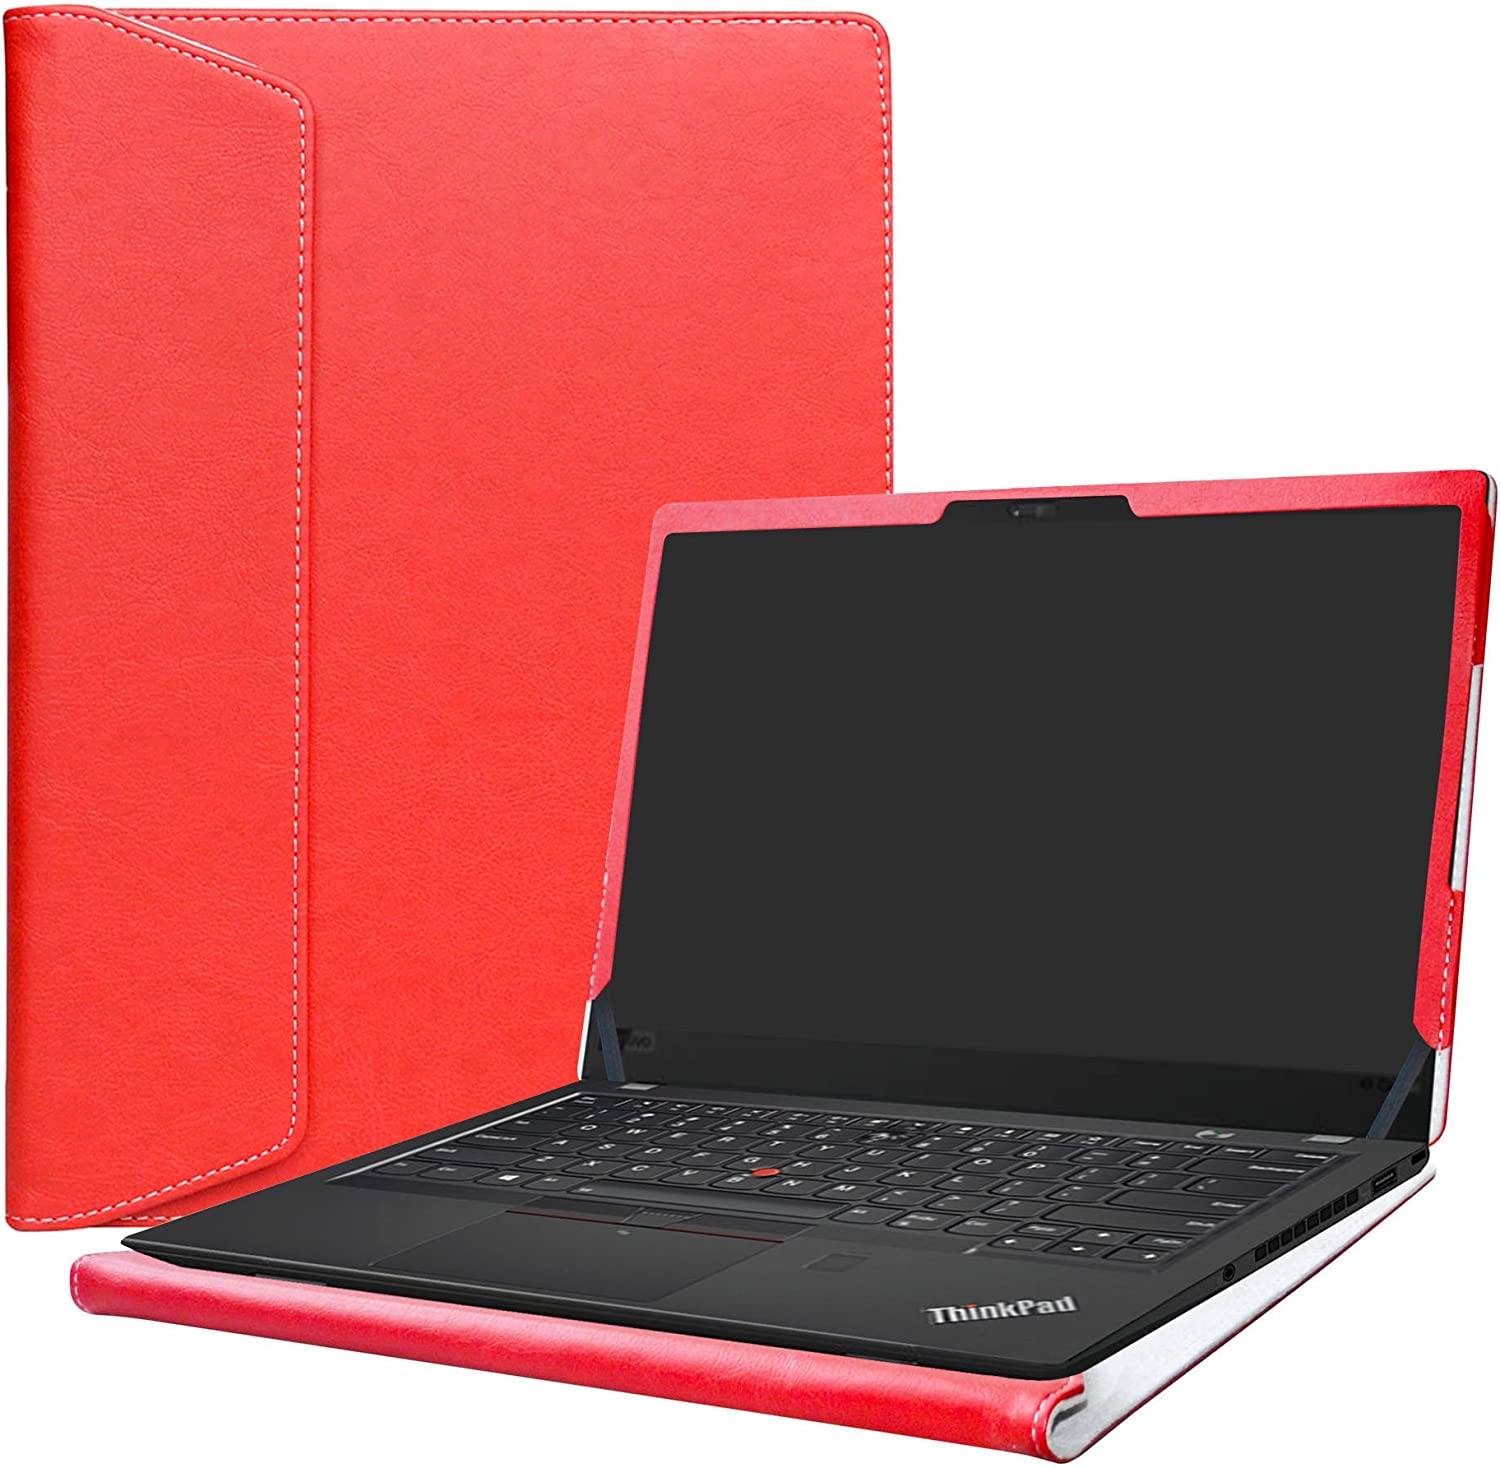 "Alapmk Protective Case Cover For 14"" Lenovo Thinkpad X1 Carbon 7th Gen/6th Gen/5th Gen & ThinkPad X1 Yoga 4th gen Laptop(Note:Not fit Thinkpad X1 Carbon 1st Gen/2nd Gen/3rd Gen/4th Gen),Red"